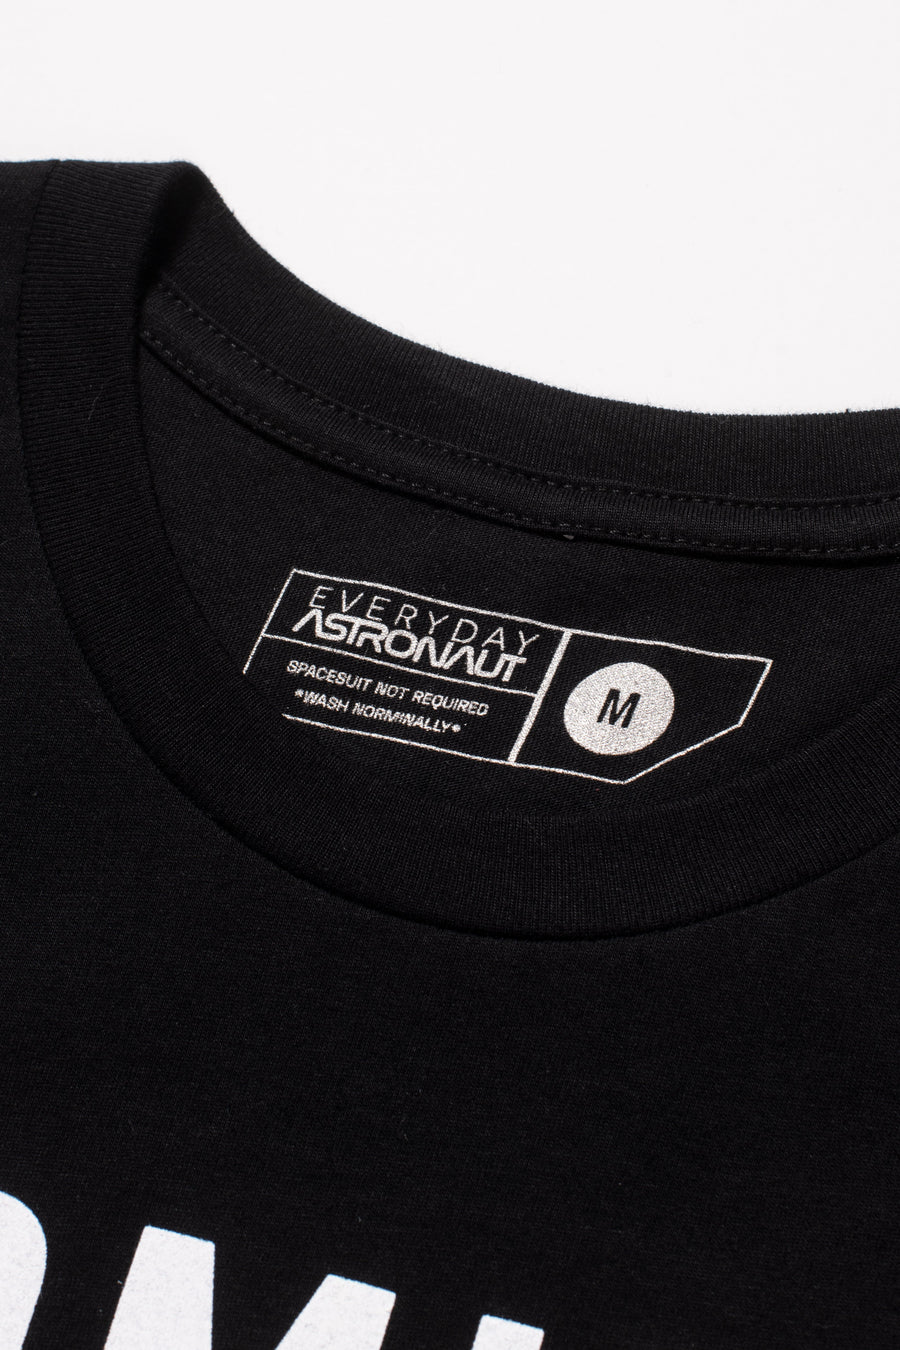 Norminal Tee